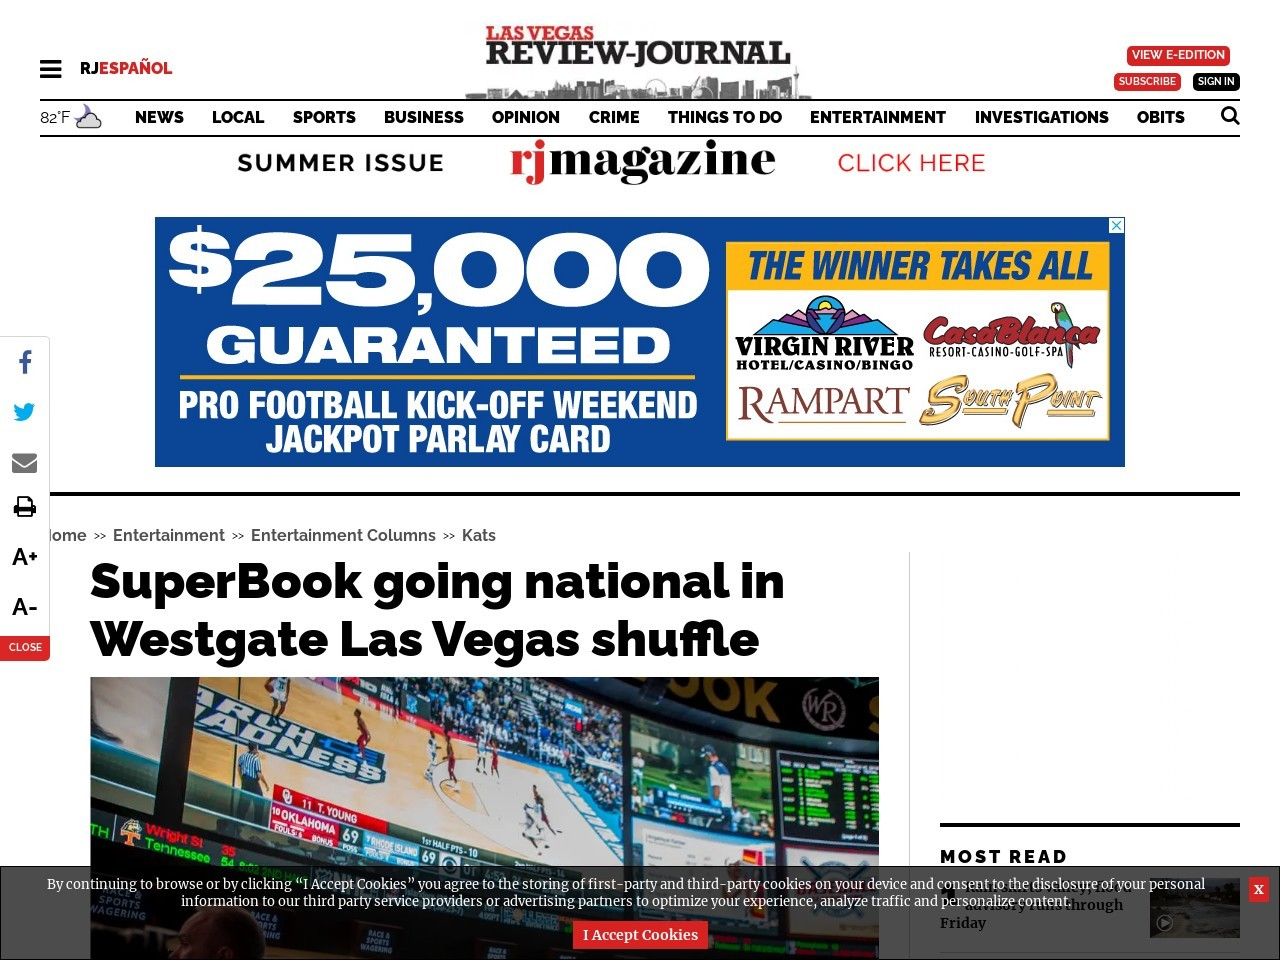 SuperBook going national in Westgate Las Vegas shuffle